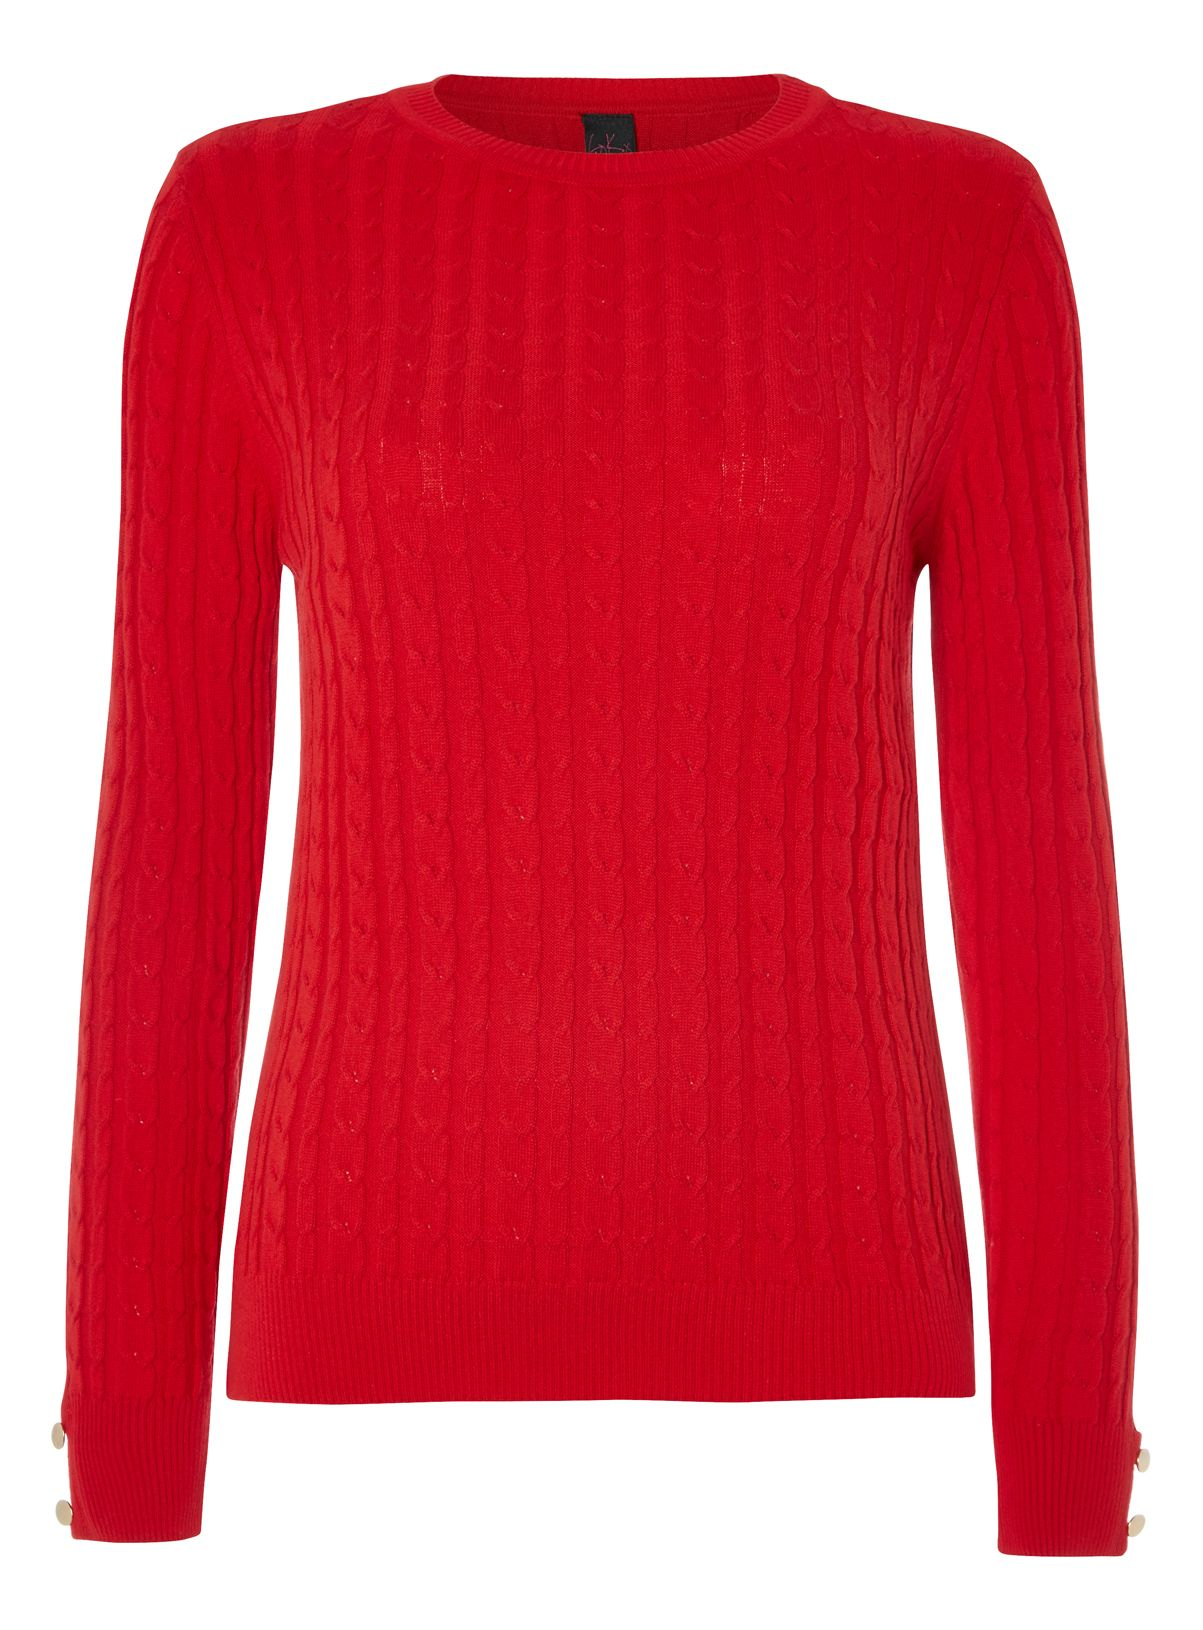 Womens Gok Red Cable Knit Jumper Tu clothing Clothes